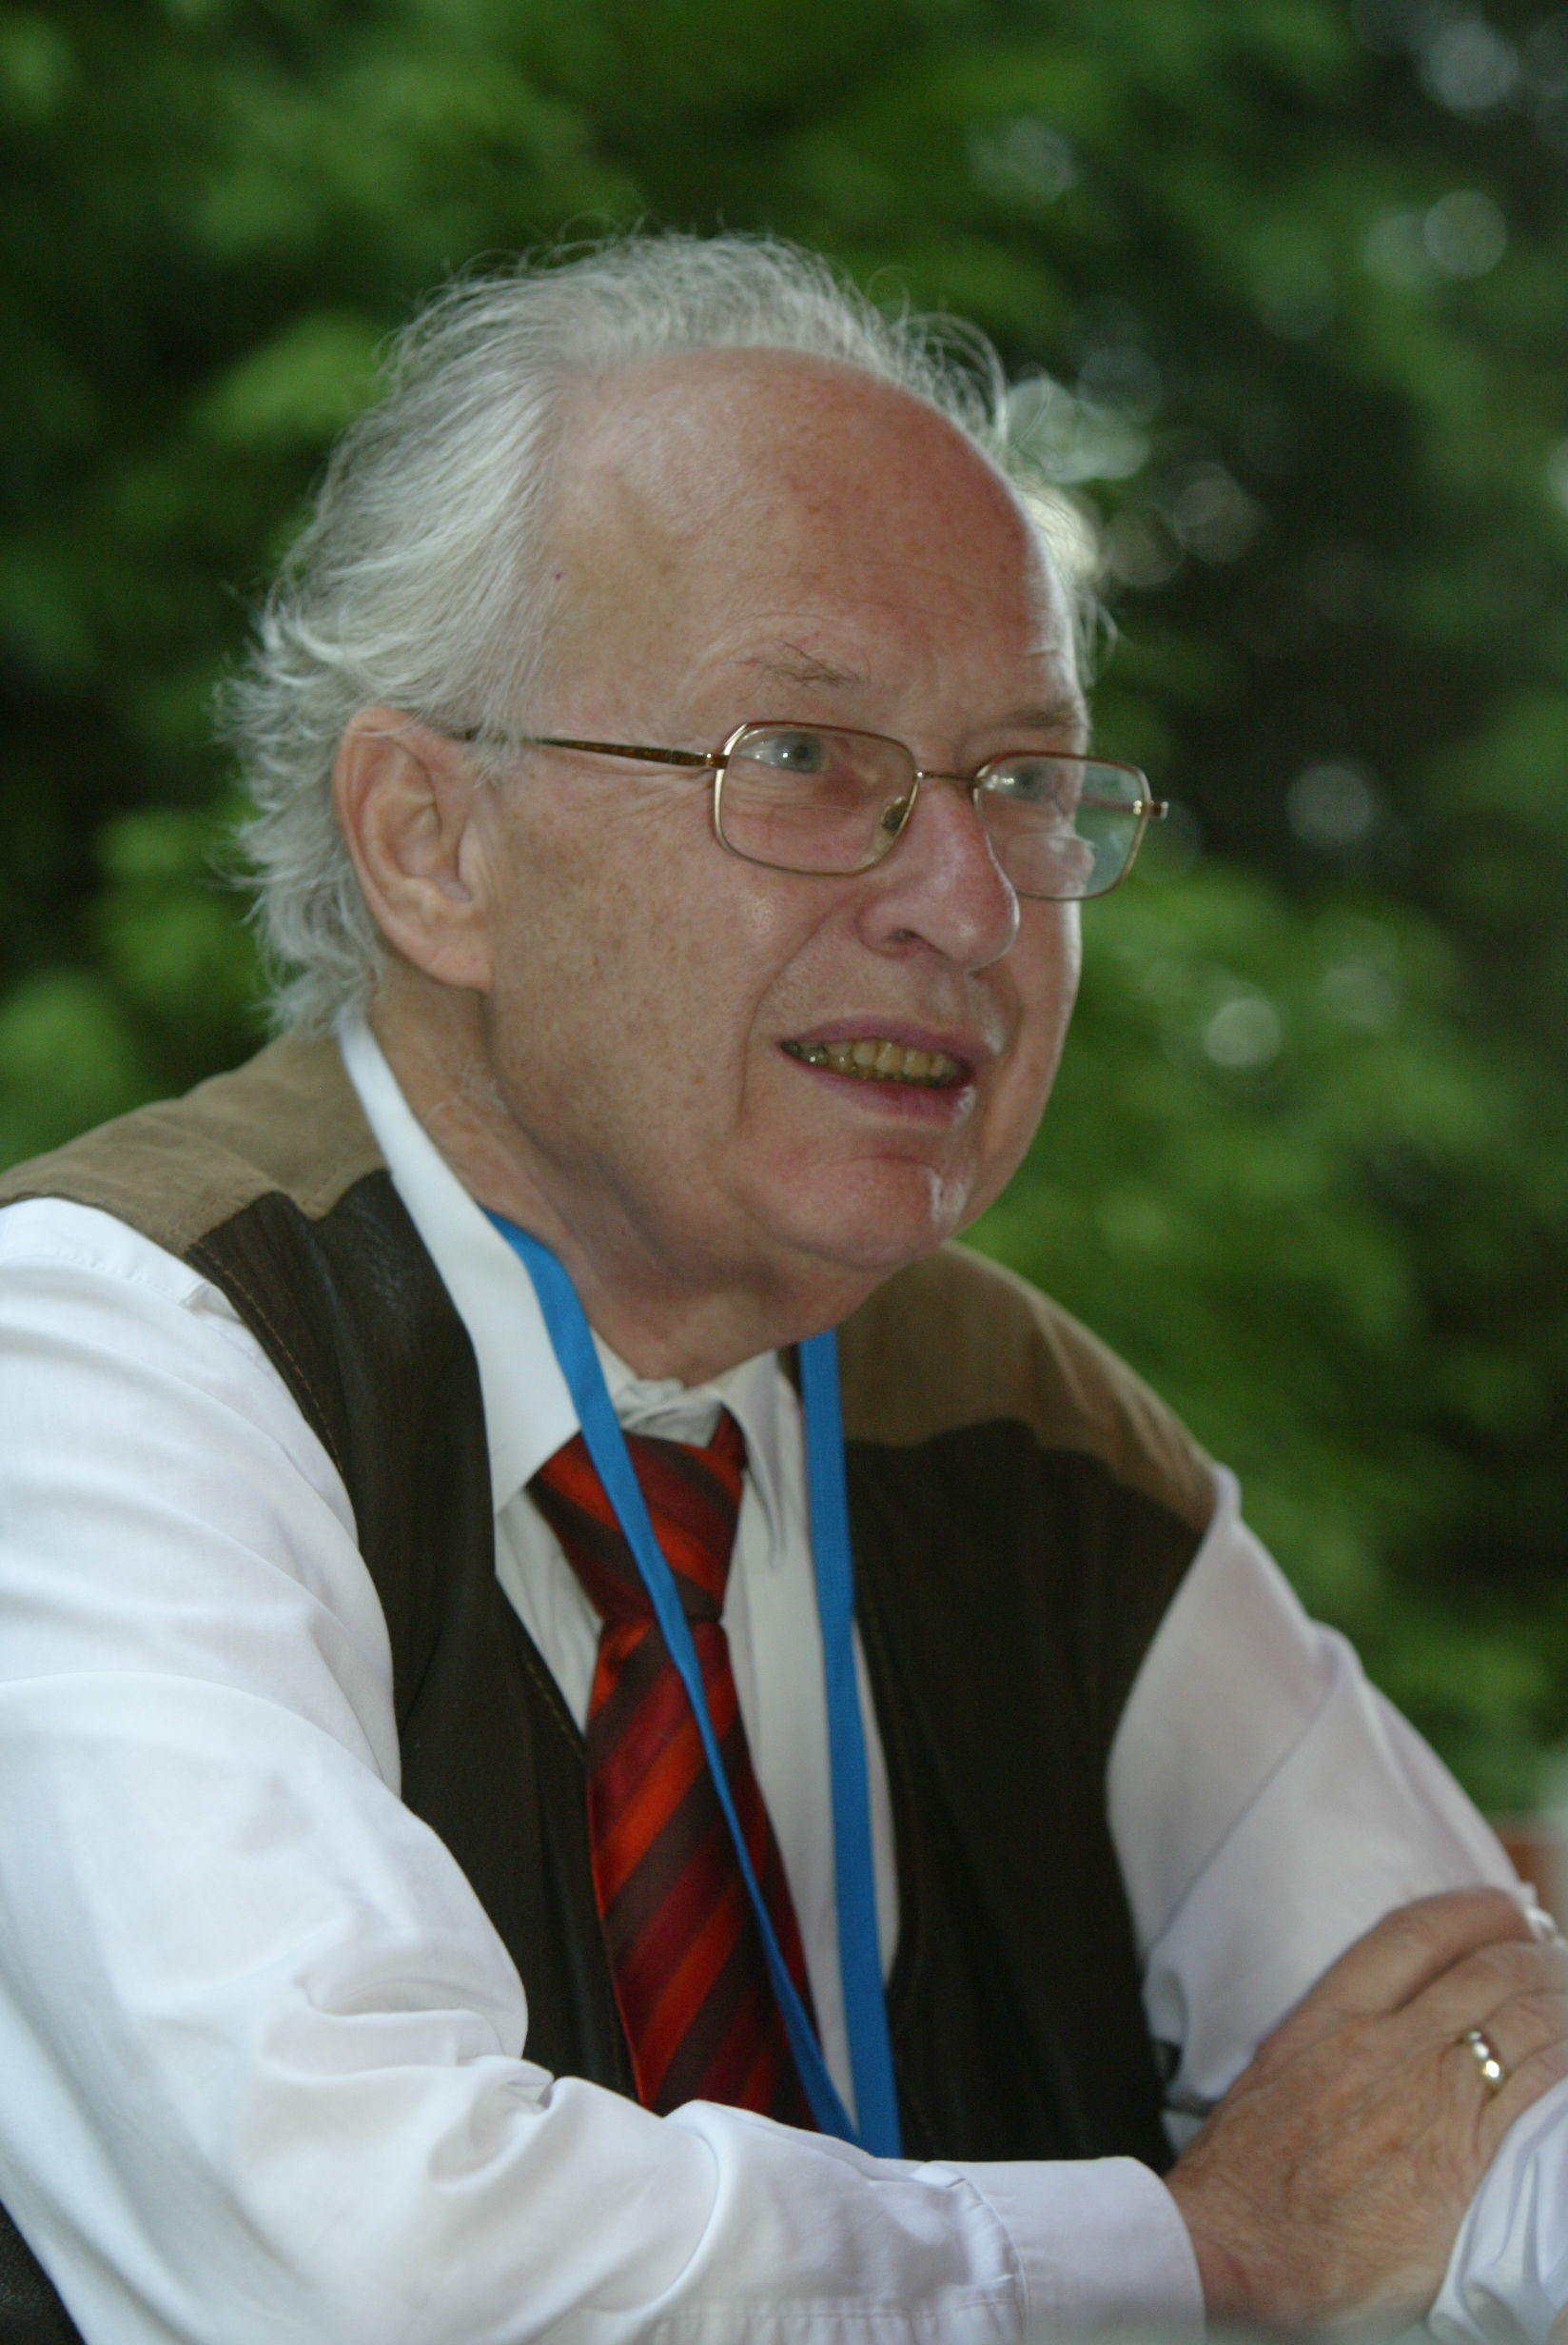 Selten at the 2nd Lindau Meeting on Economic Sciences in 2006. Photo: Ch. Flemming/Lindau Nobel Laureate Meetings